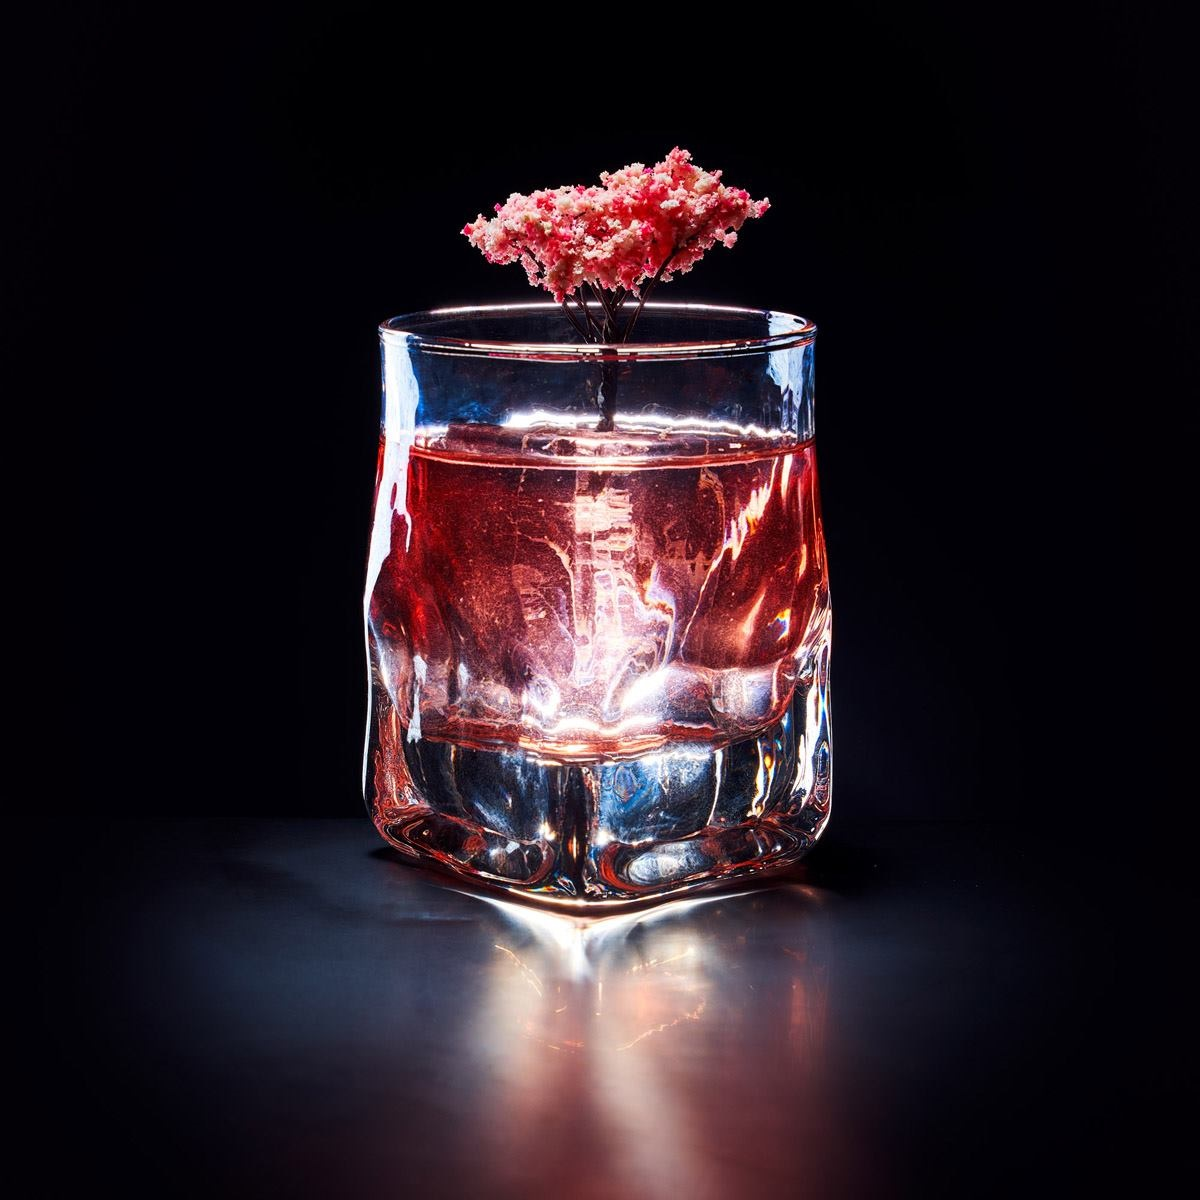 Cherry Blossom Negroni - image taken from their Facebook page